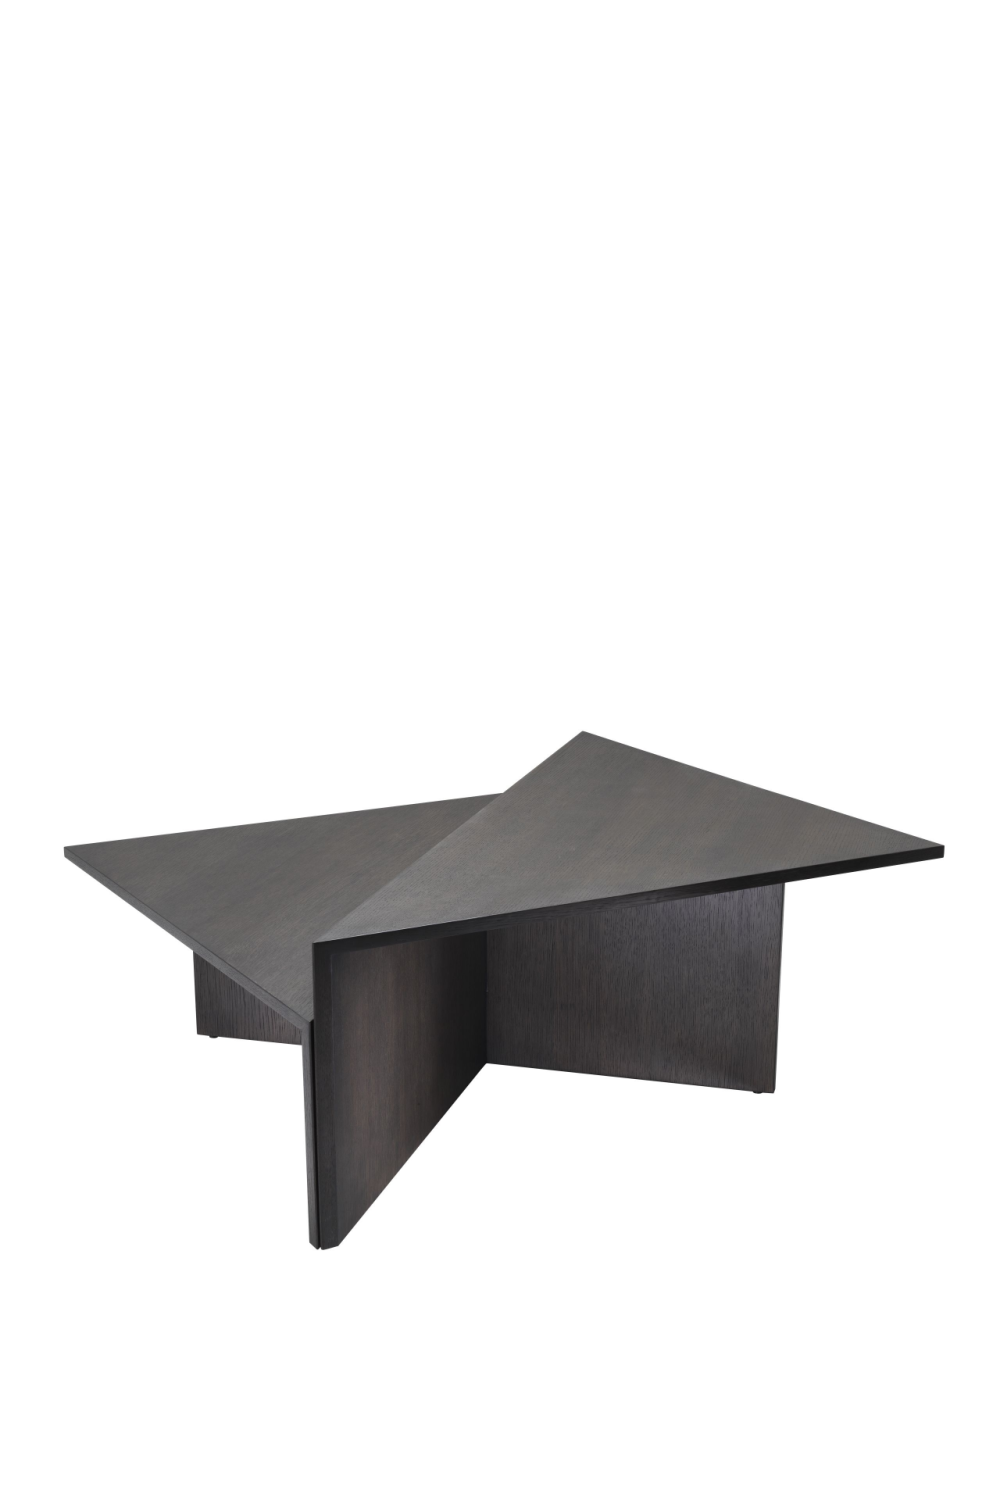 Dark Brown Triangular Coffee Table | Eichholtz | #1 Eichholtz Retailer